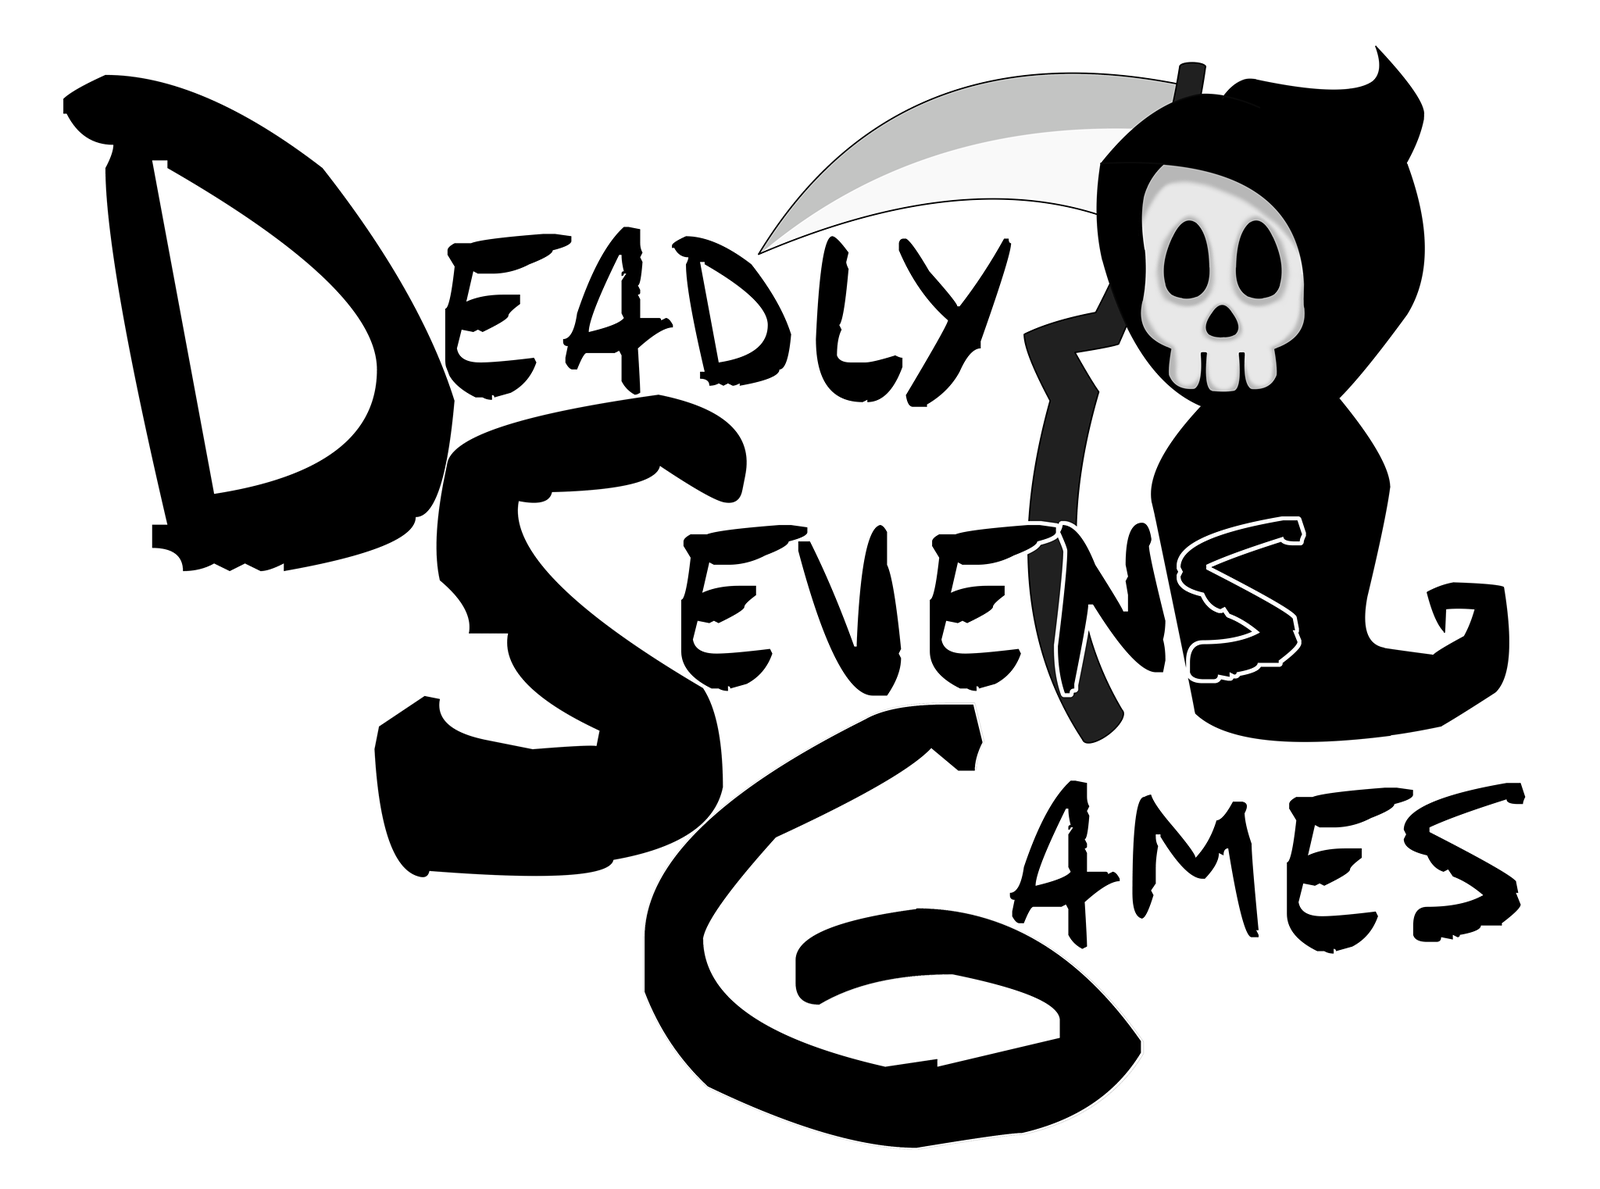 Deadly Sevens Games